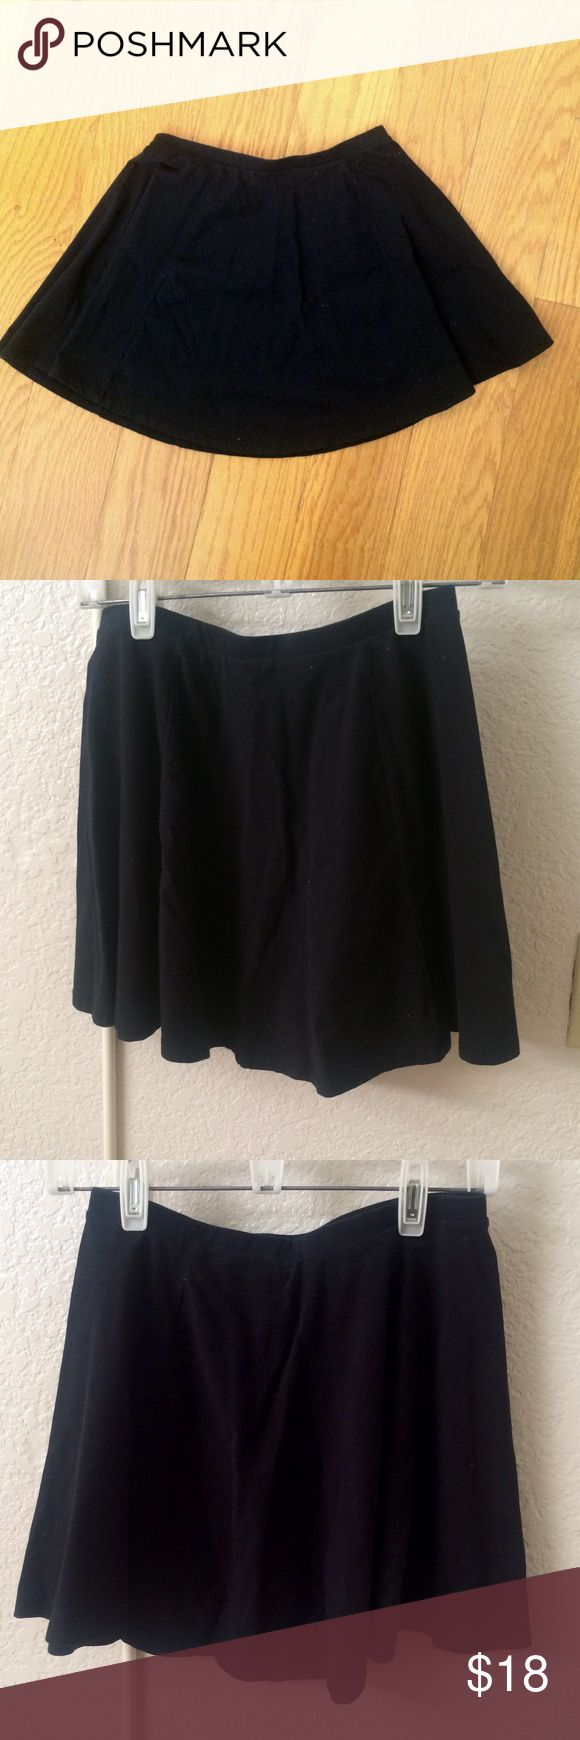 Black Circle Skirt Black circle skirt from PacSun. The tag rubbed off but i bought it from there. PacSun Skirts Circle & Skater